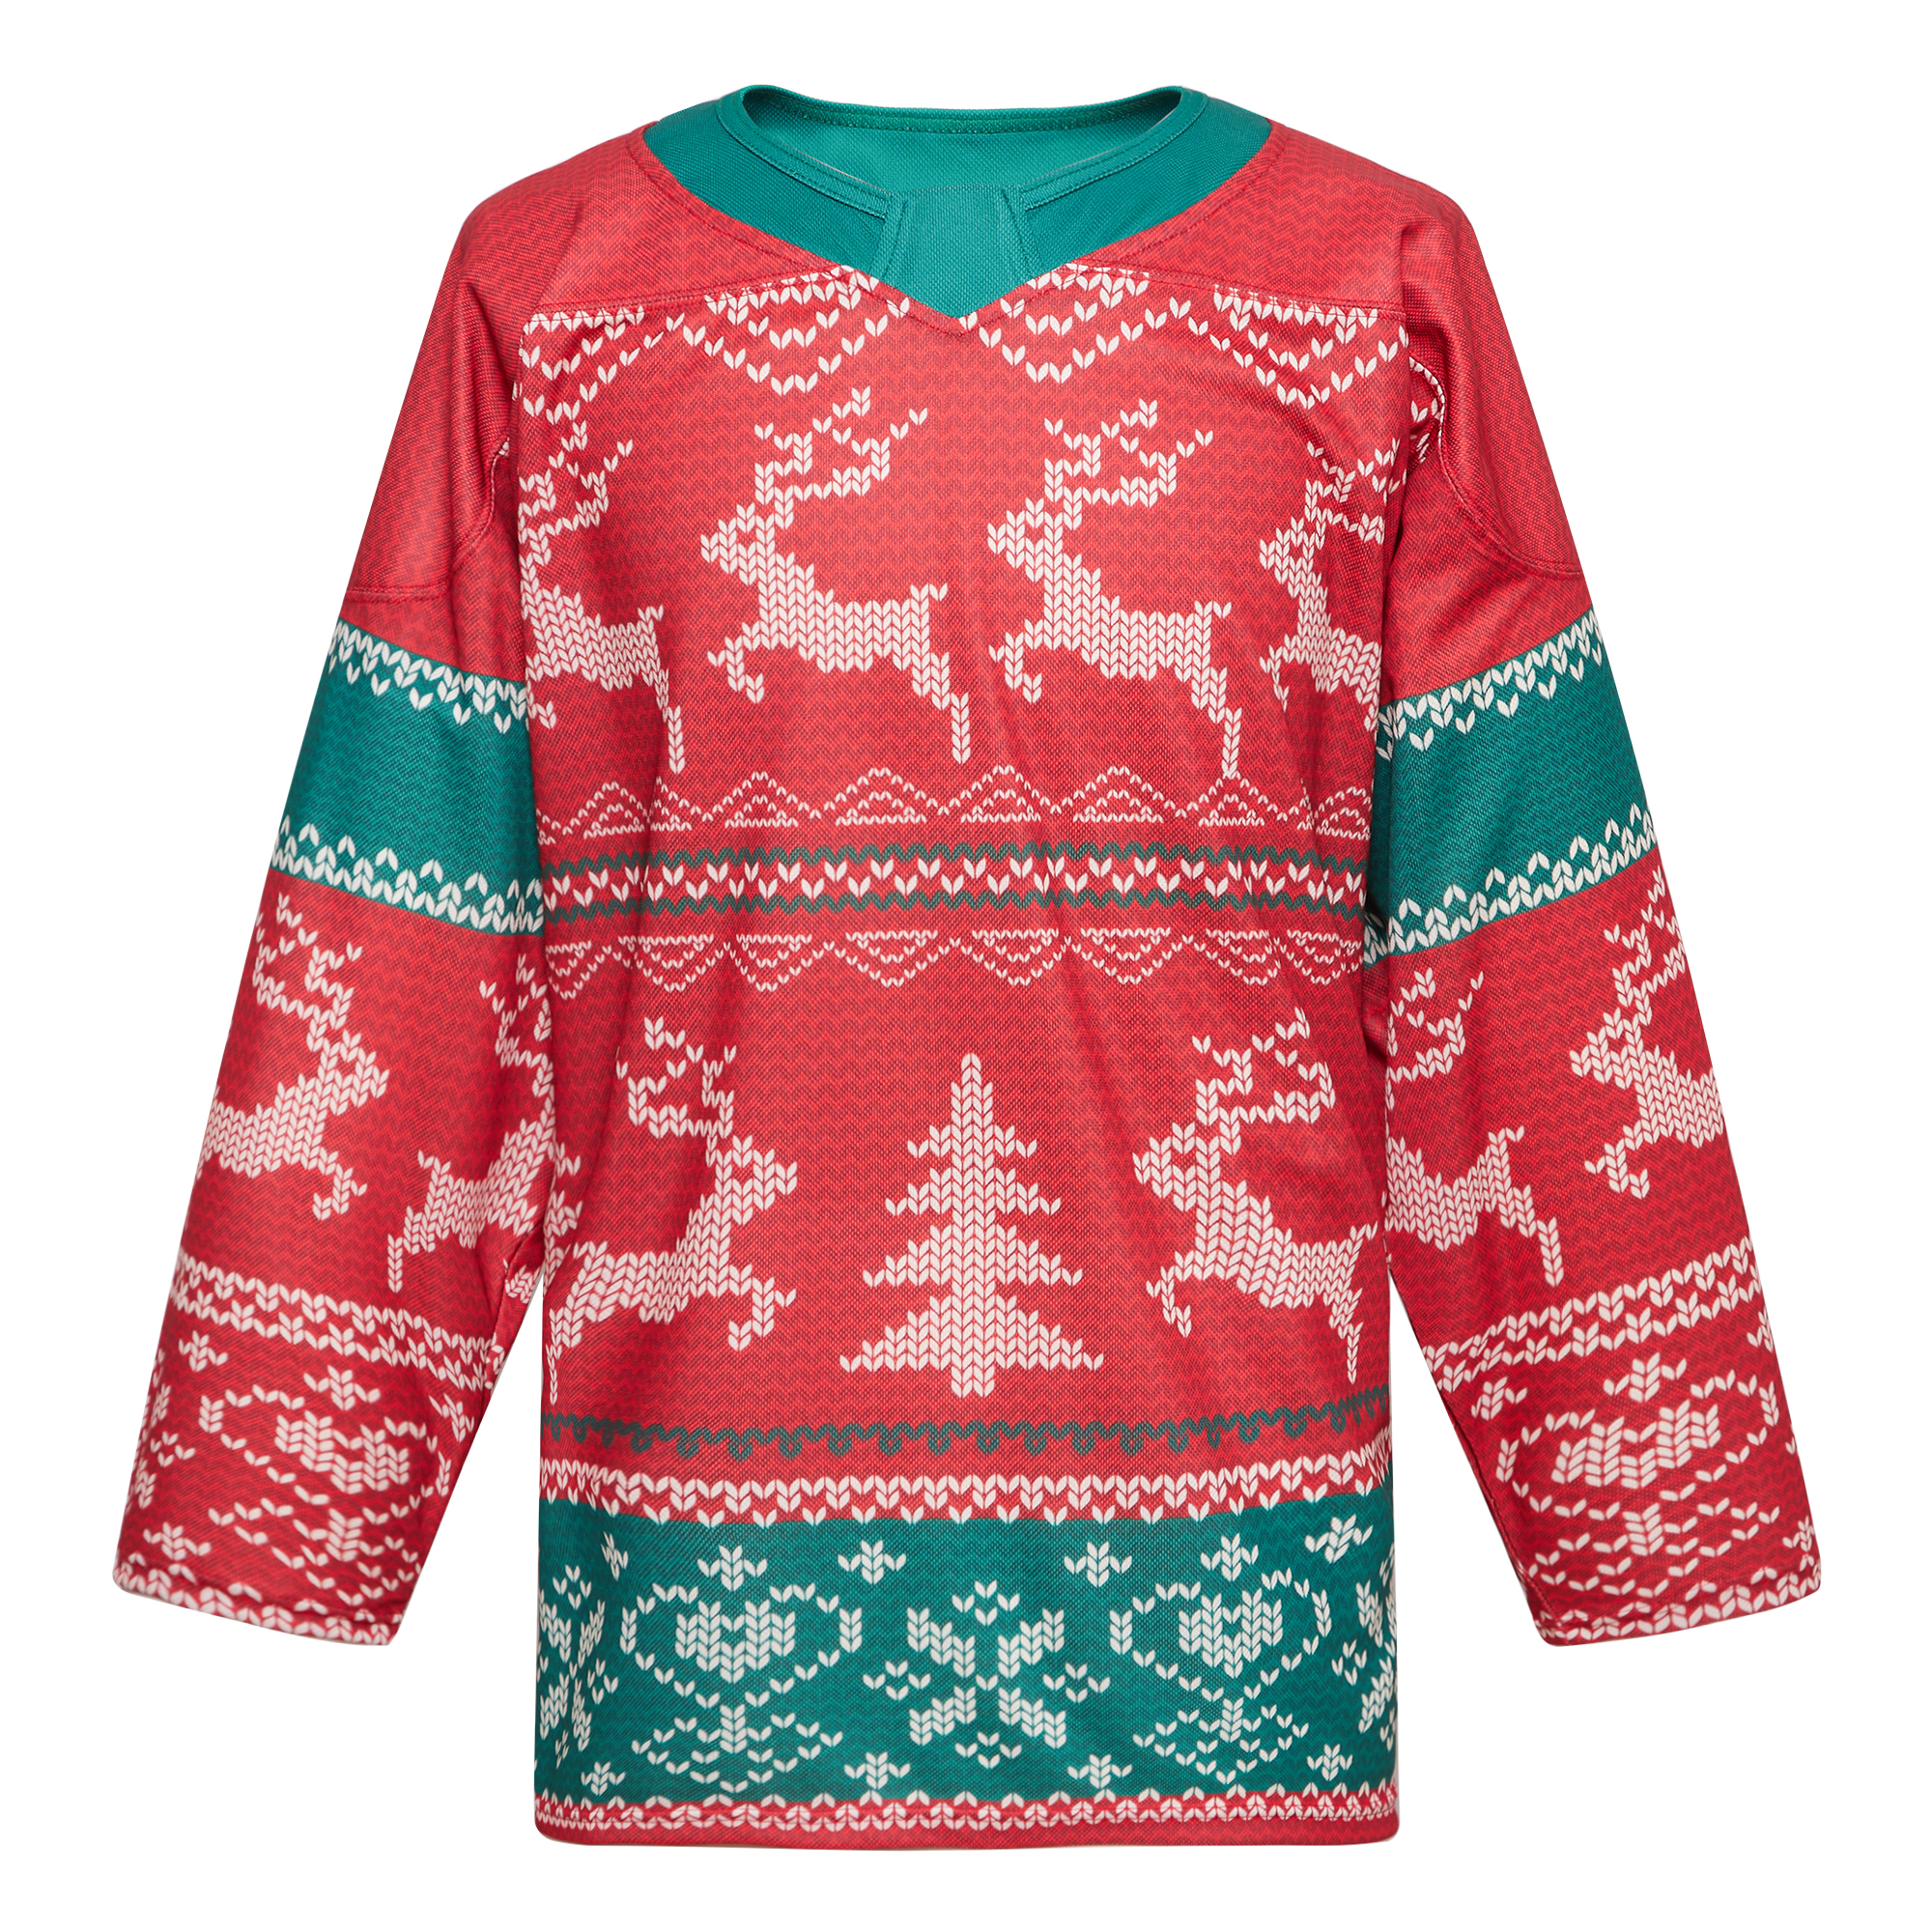 COLDOUTDOOR Sublimation Christmas vintage hockey practice jersey + socks set X-mas Ugly sweater suit